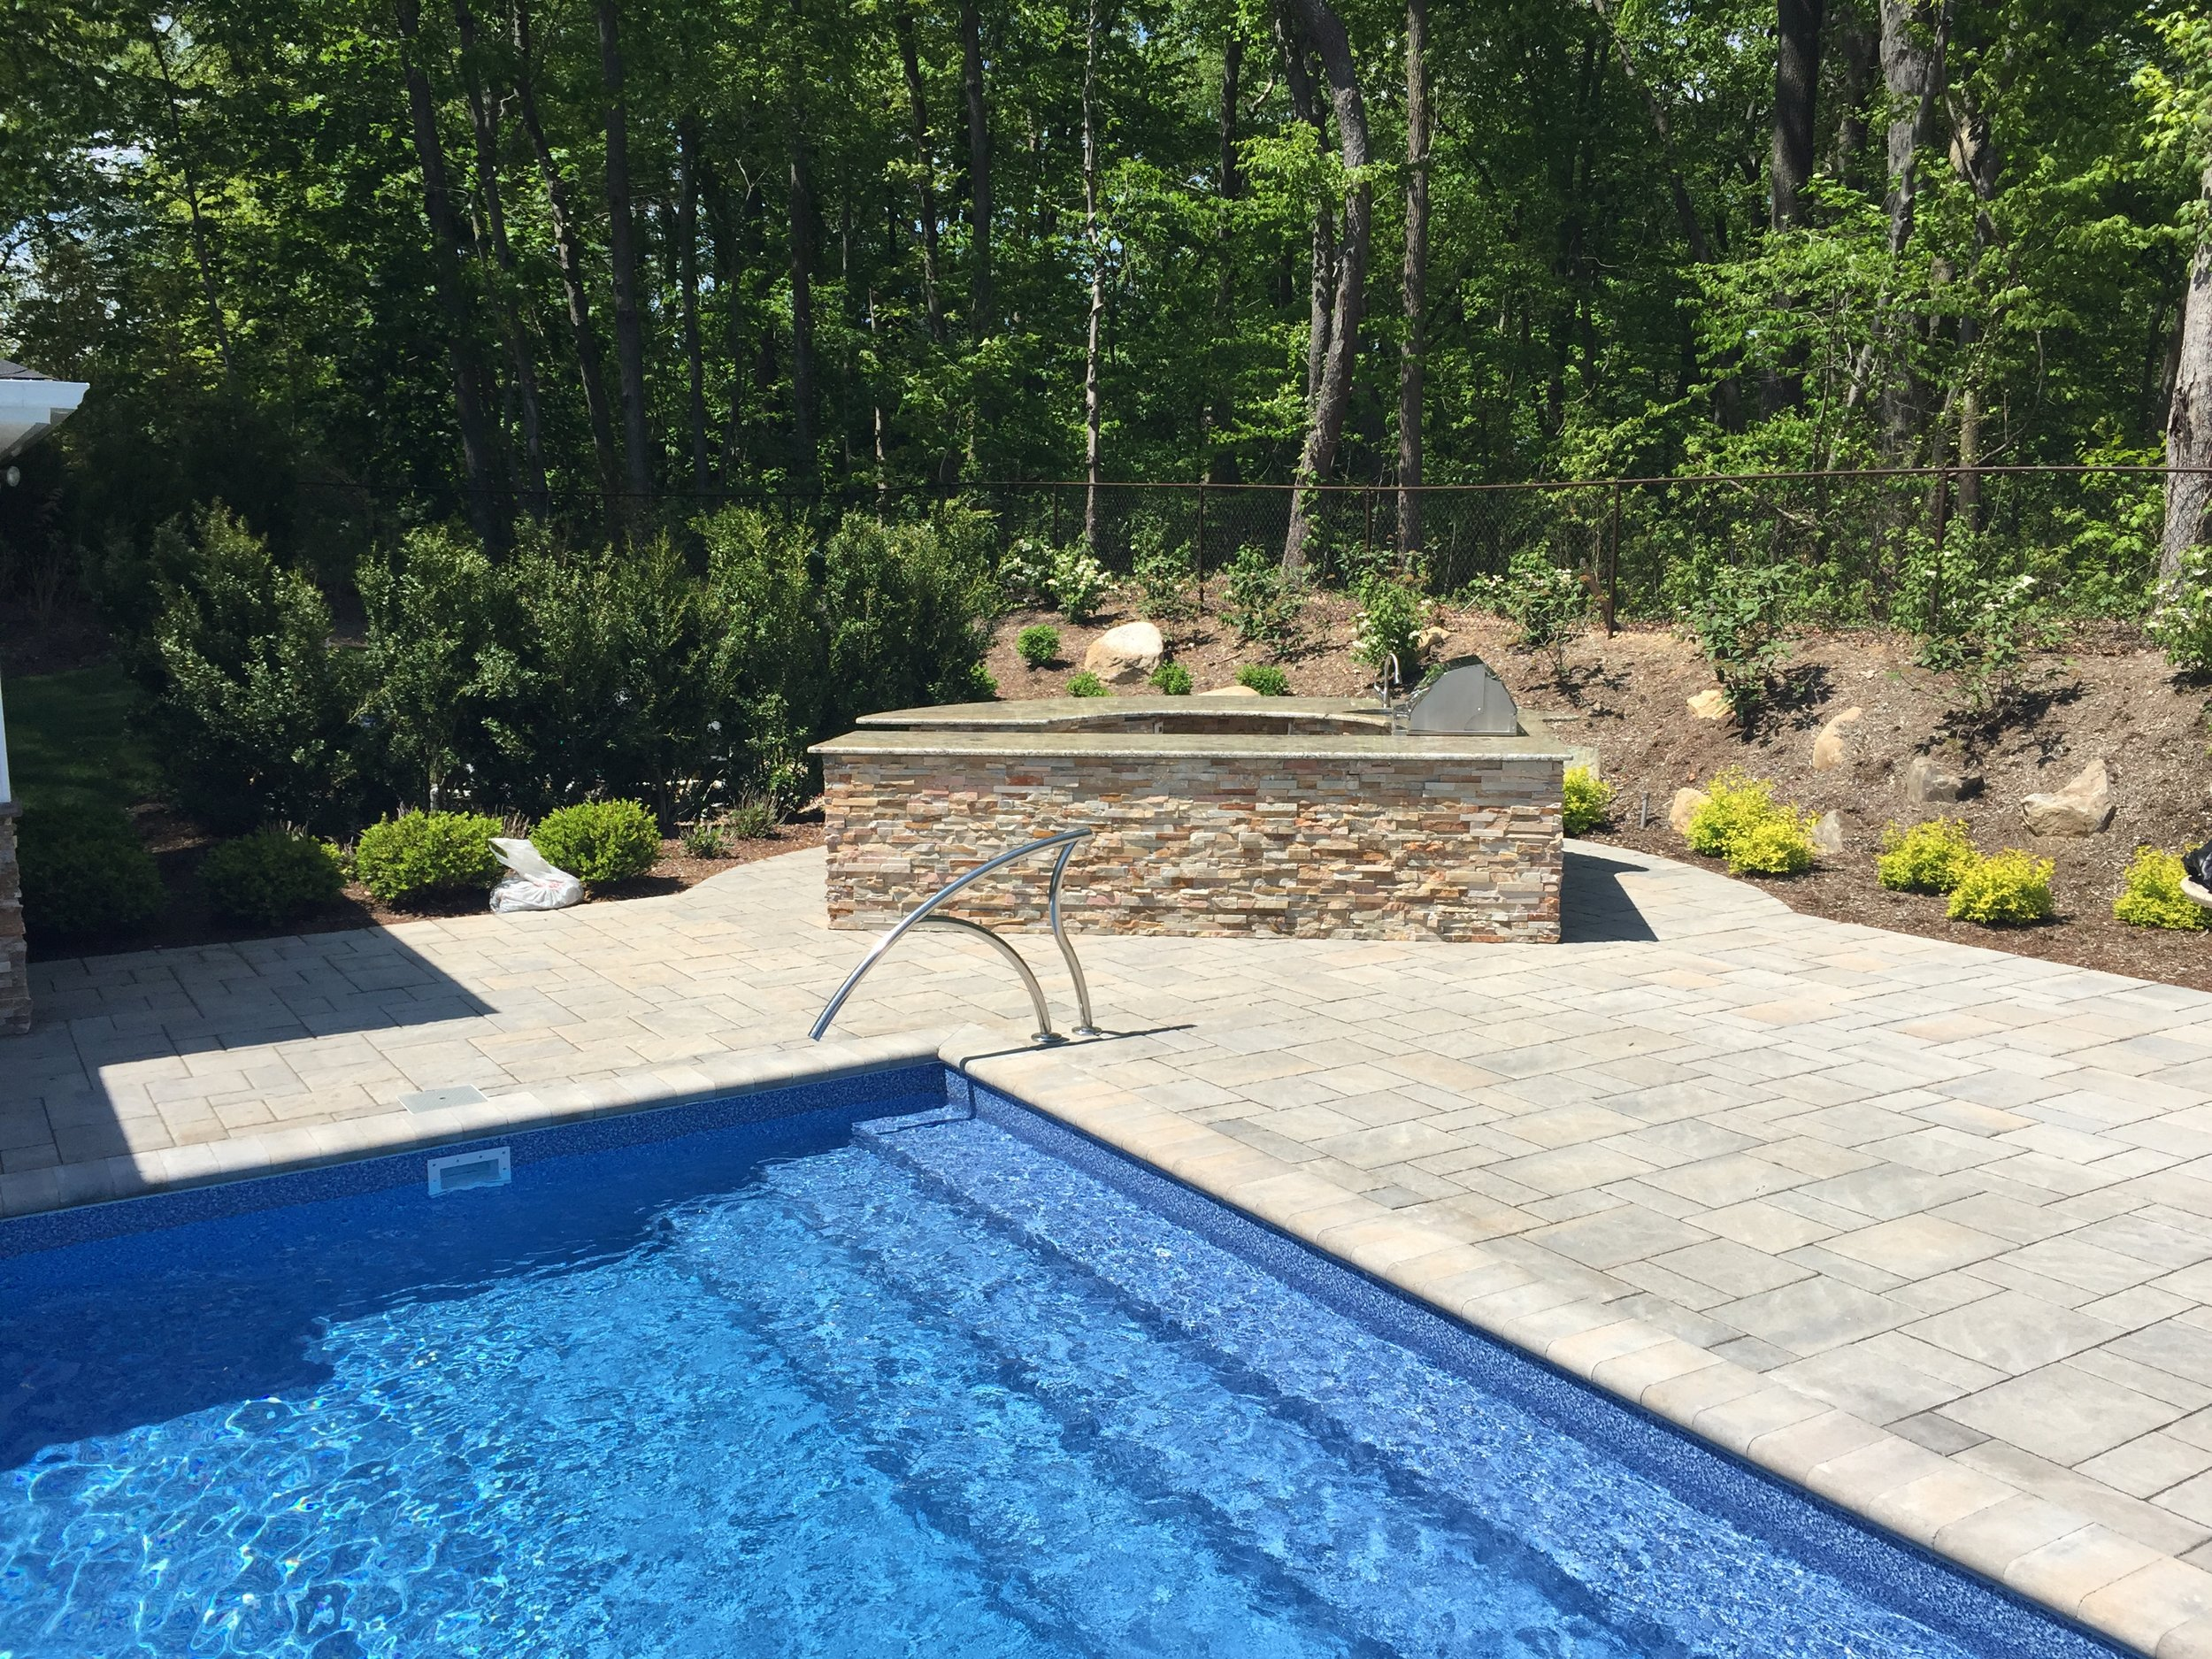 Professional pool patio landscapedesign company in Long Island, NY